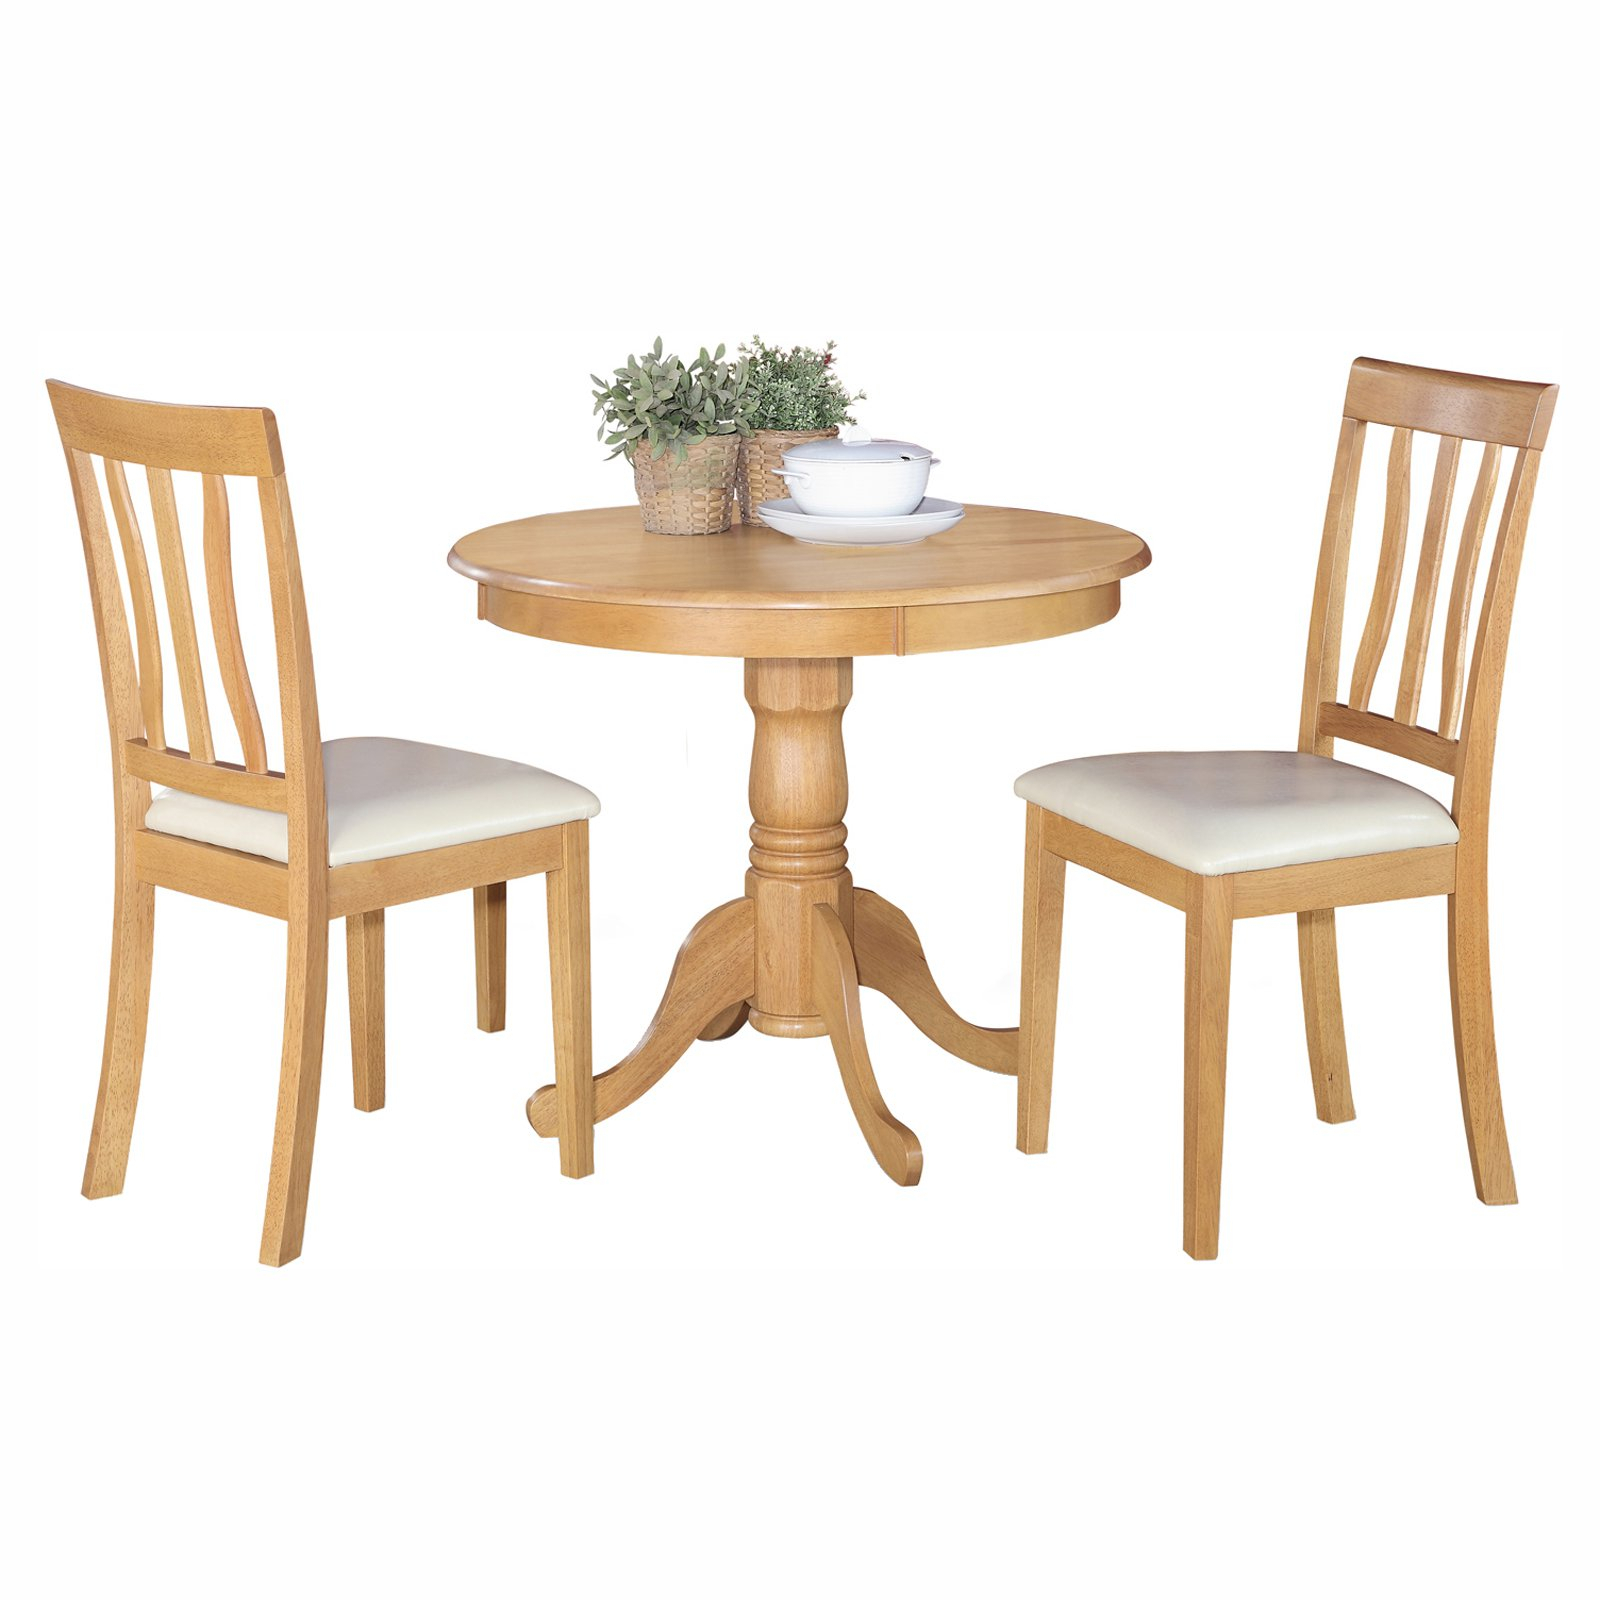 Famous West Hill Family Table 3 Piece Dining Sets Inside East West Furniture Antique 3 Piece Pedestal Round Dining Table Set (#6 of 20)